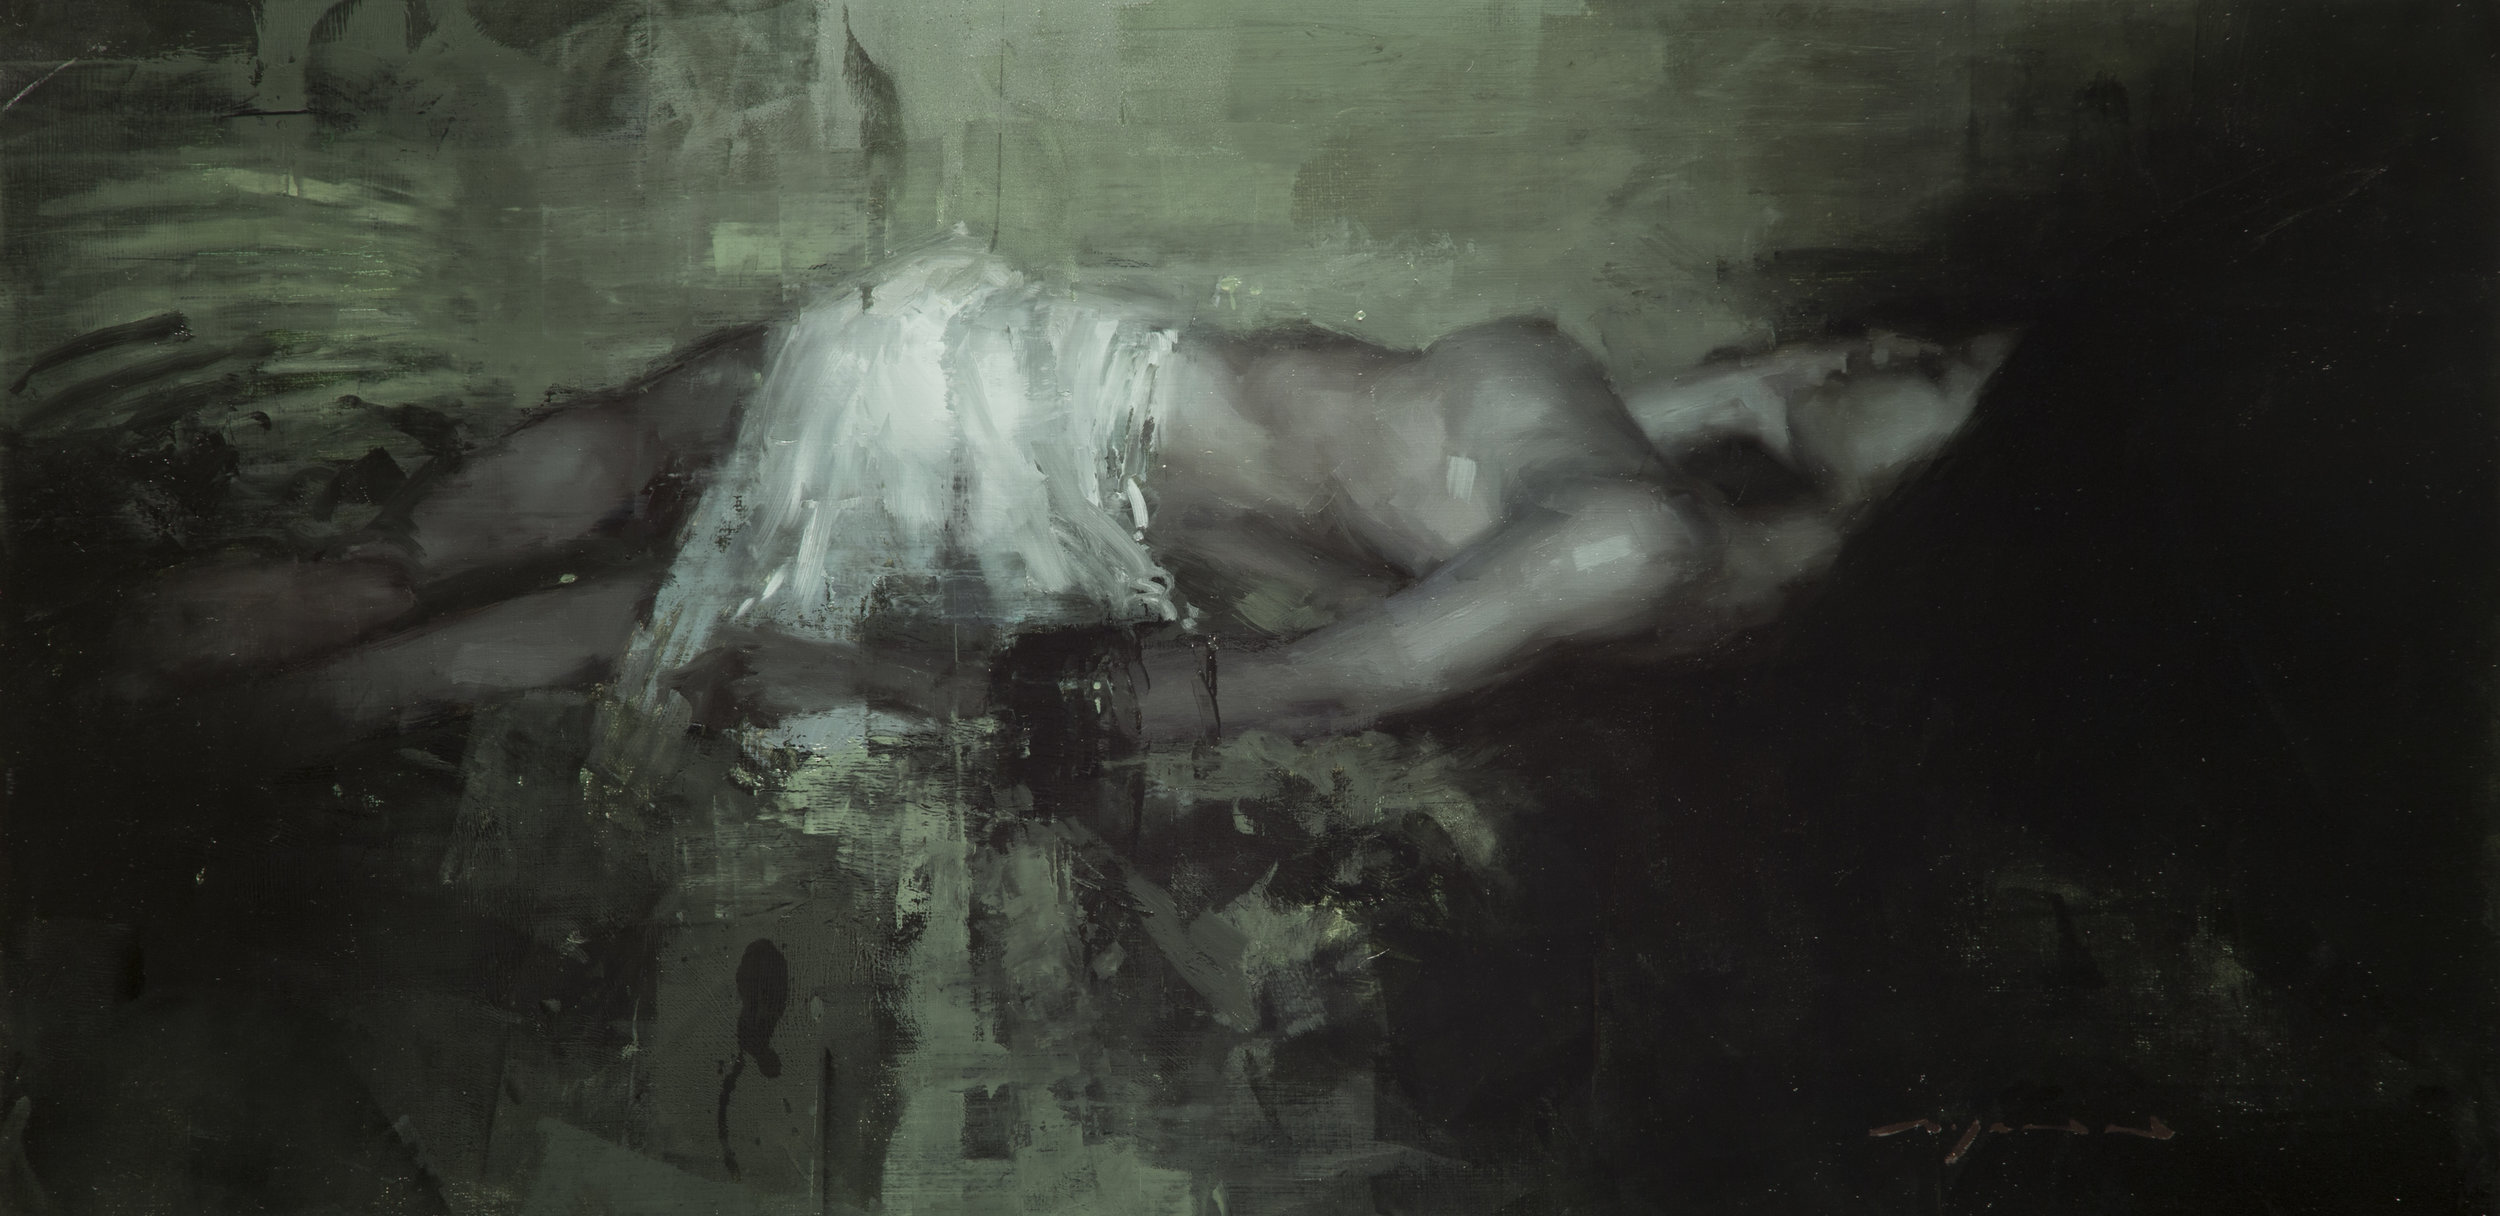 The Sleepless Dream - 12 x 24 inches - Oil on Panel - Mar-17